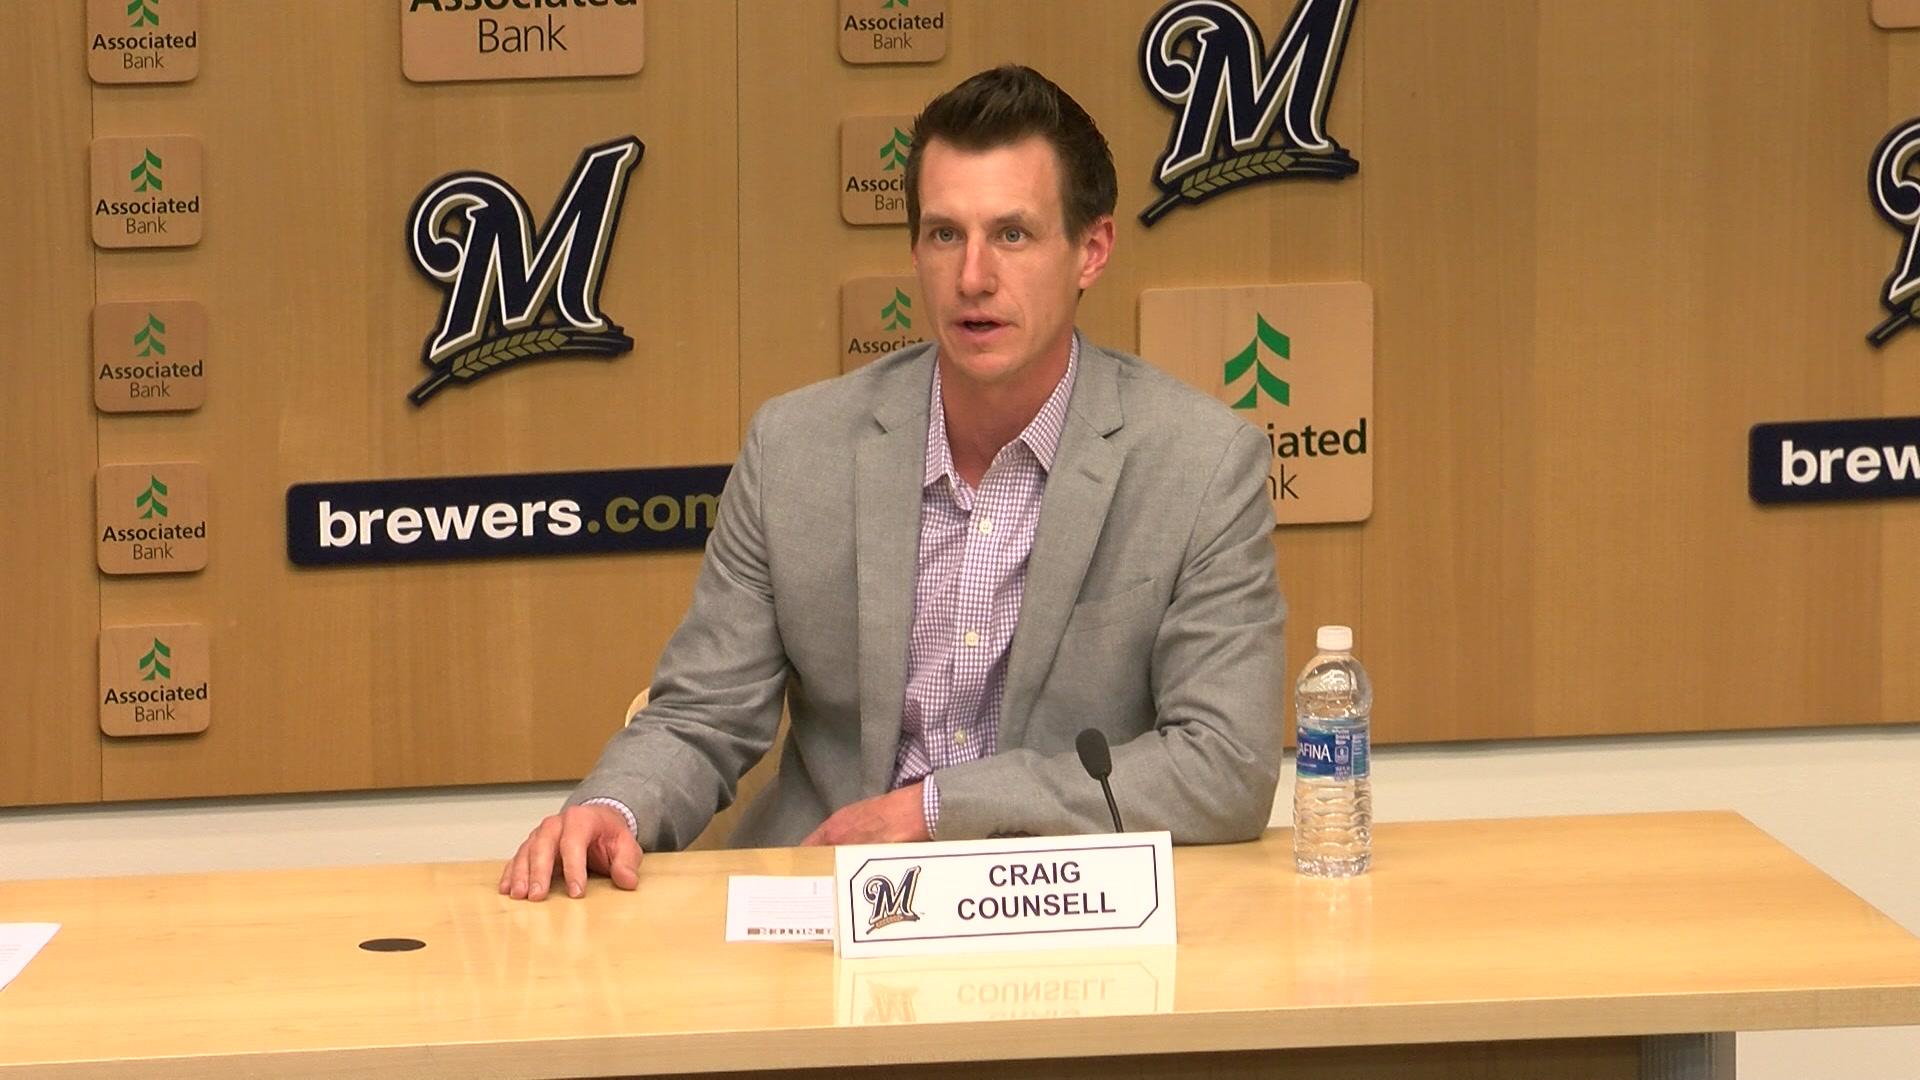 Craig Counsell by